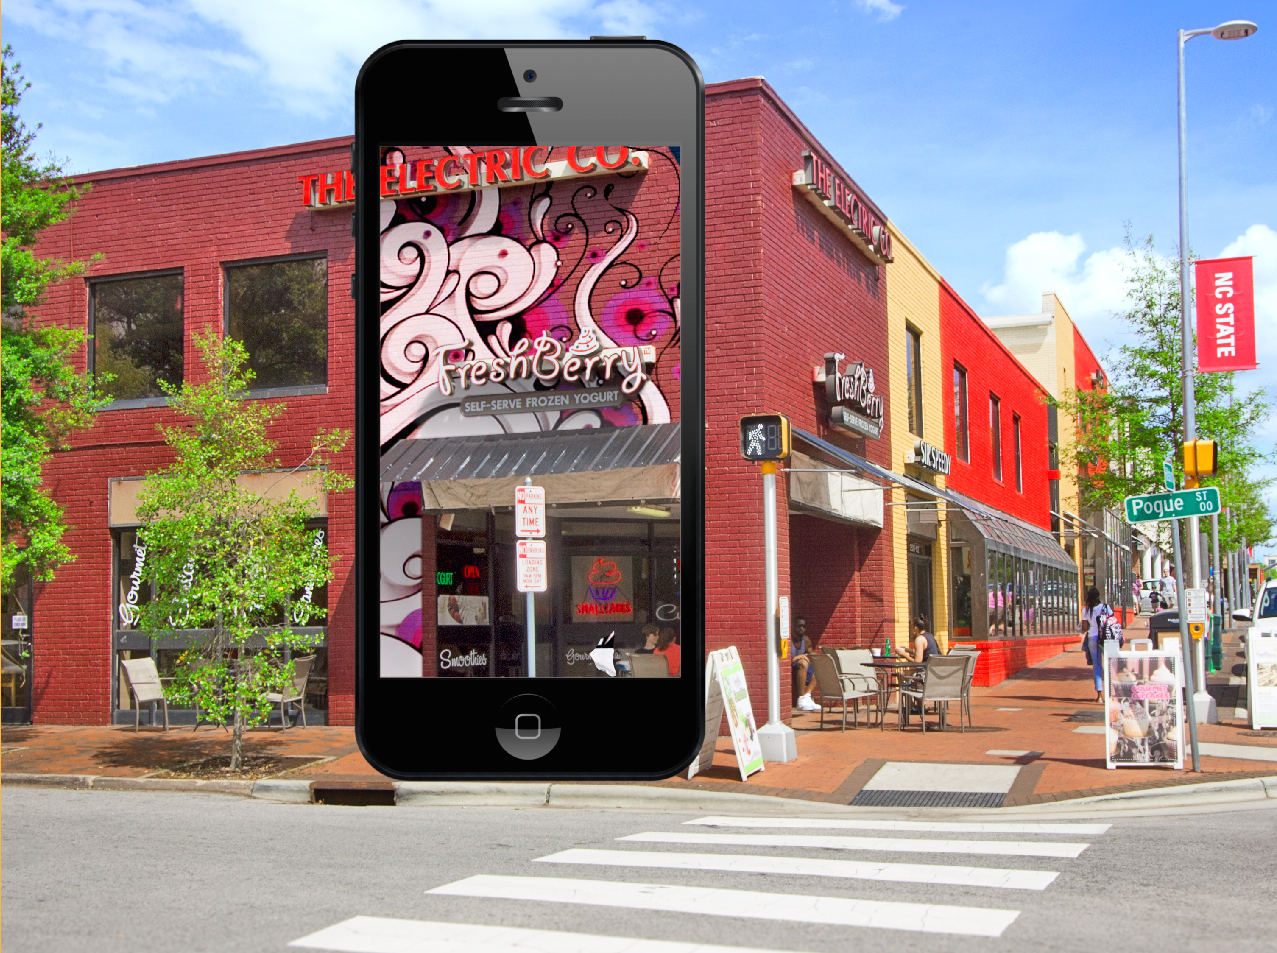 Picture showing an augmented reality overlay of graffiti on a building on Hillsborough Street